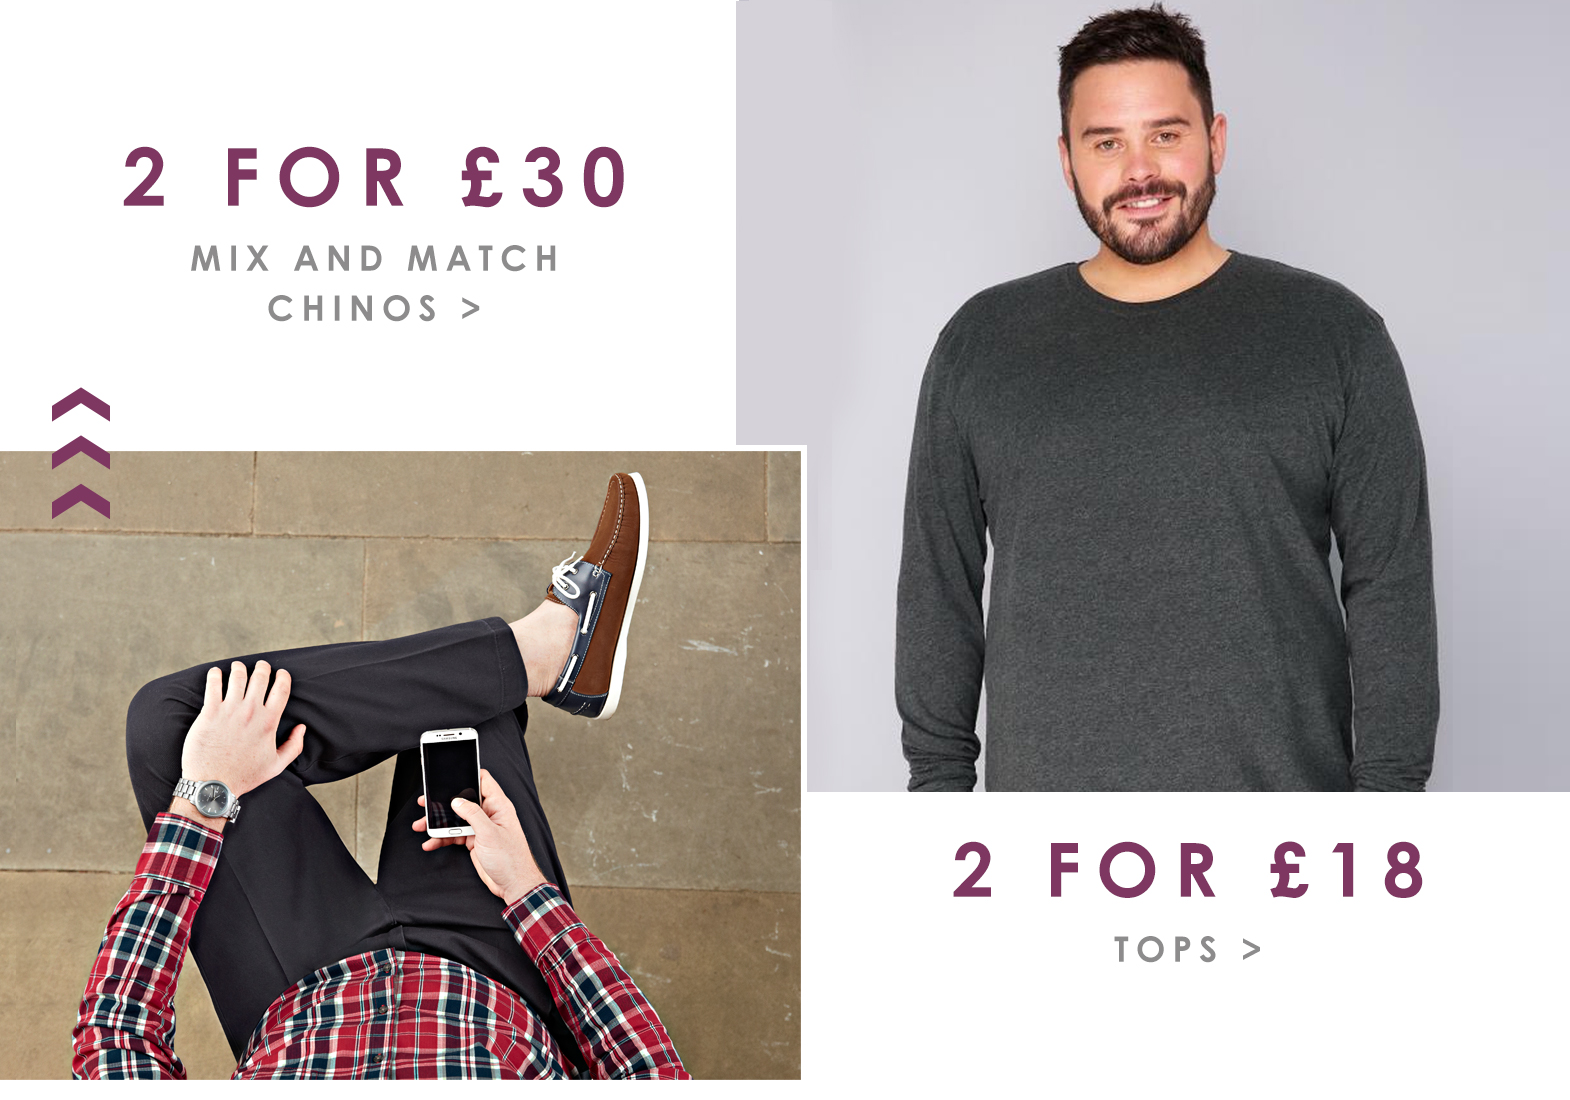 BR Offers Page - 2 for 30 chinos, 2 for 18 tops